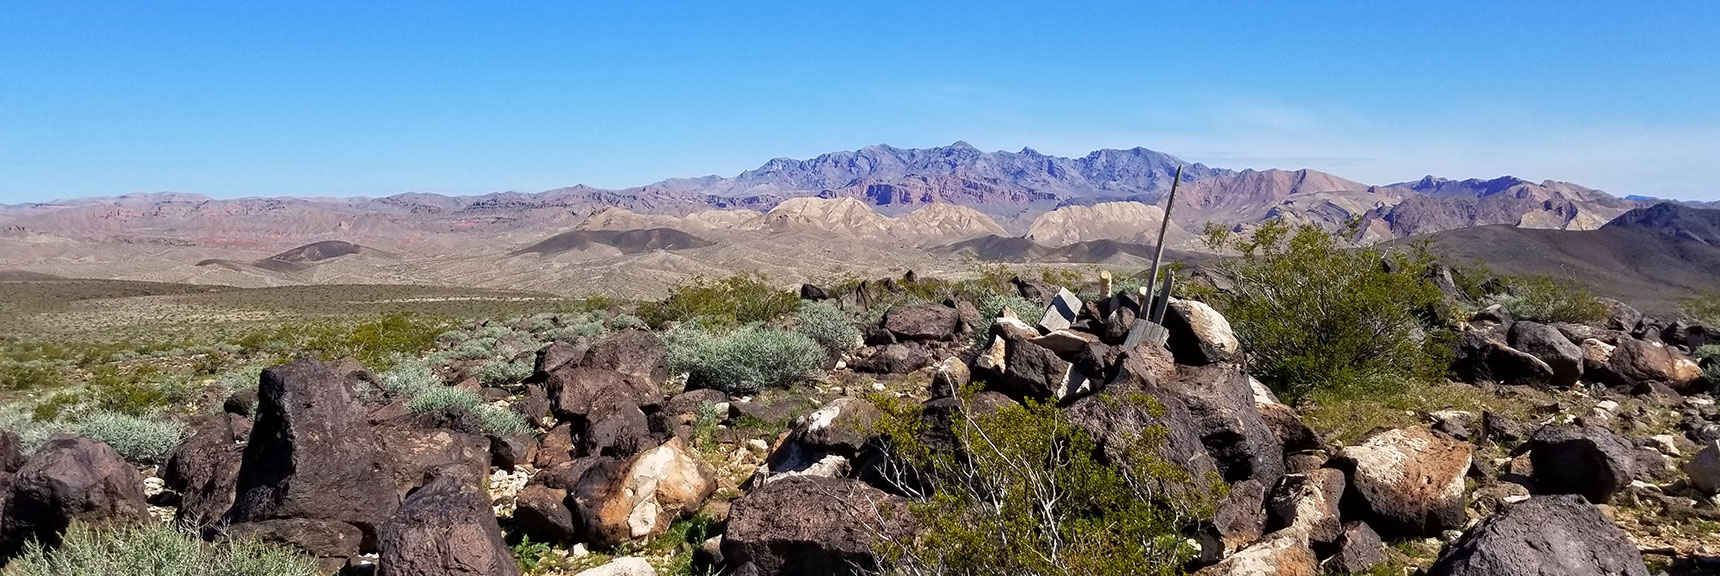 View Toward Muddy Mountains from Black Mesa in Lake Mead National Recreation Area, Nevada